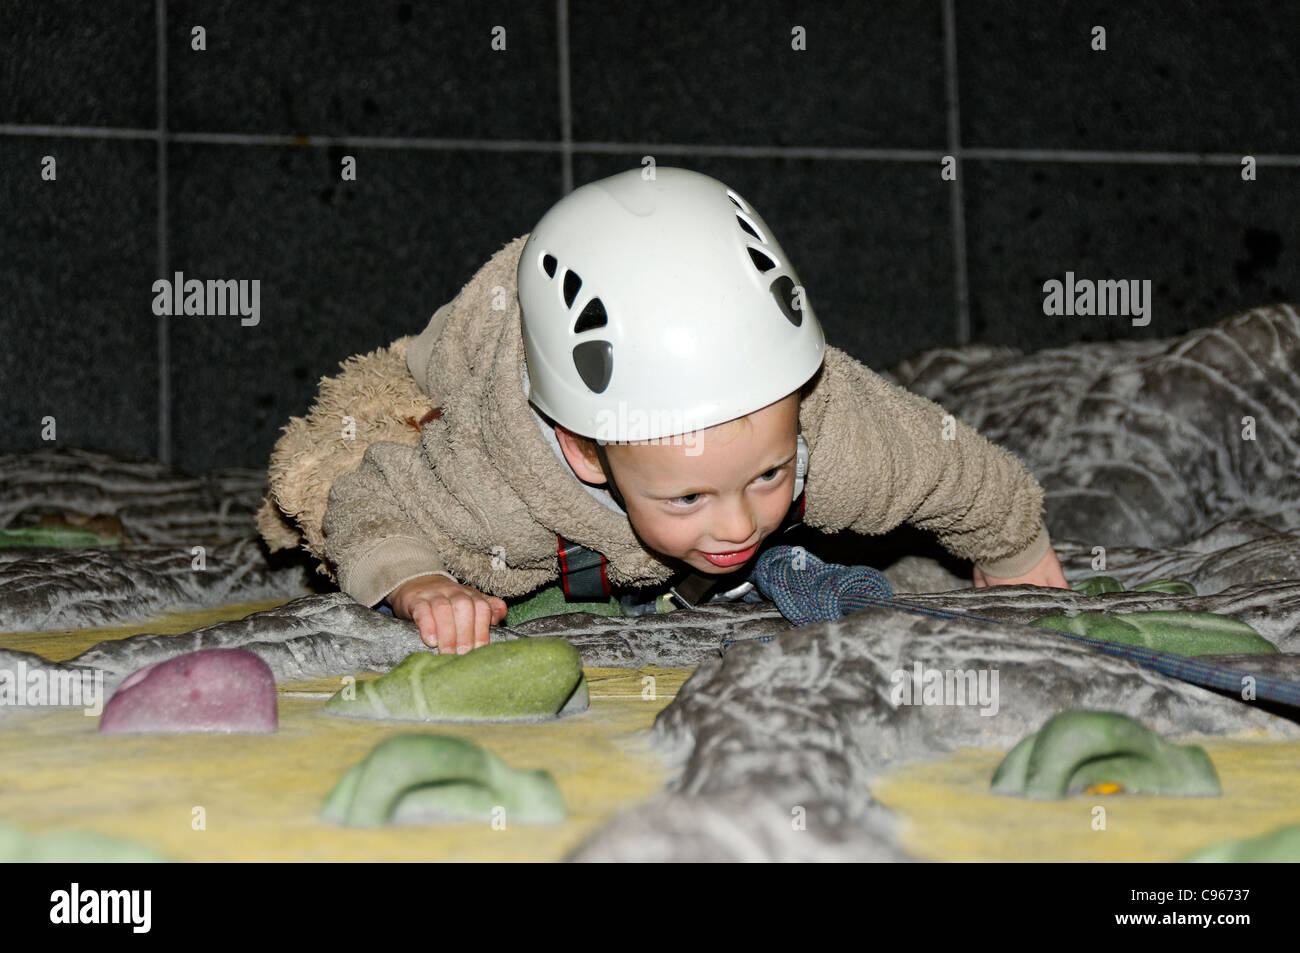 A young boy on an indoor climbing wall - Stock Image